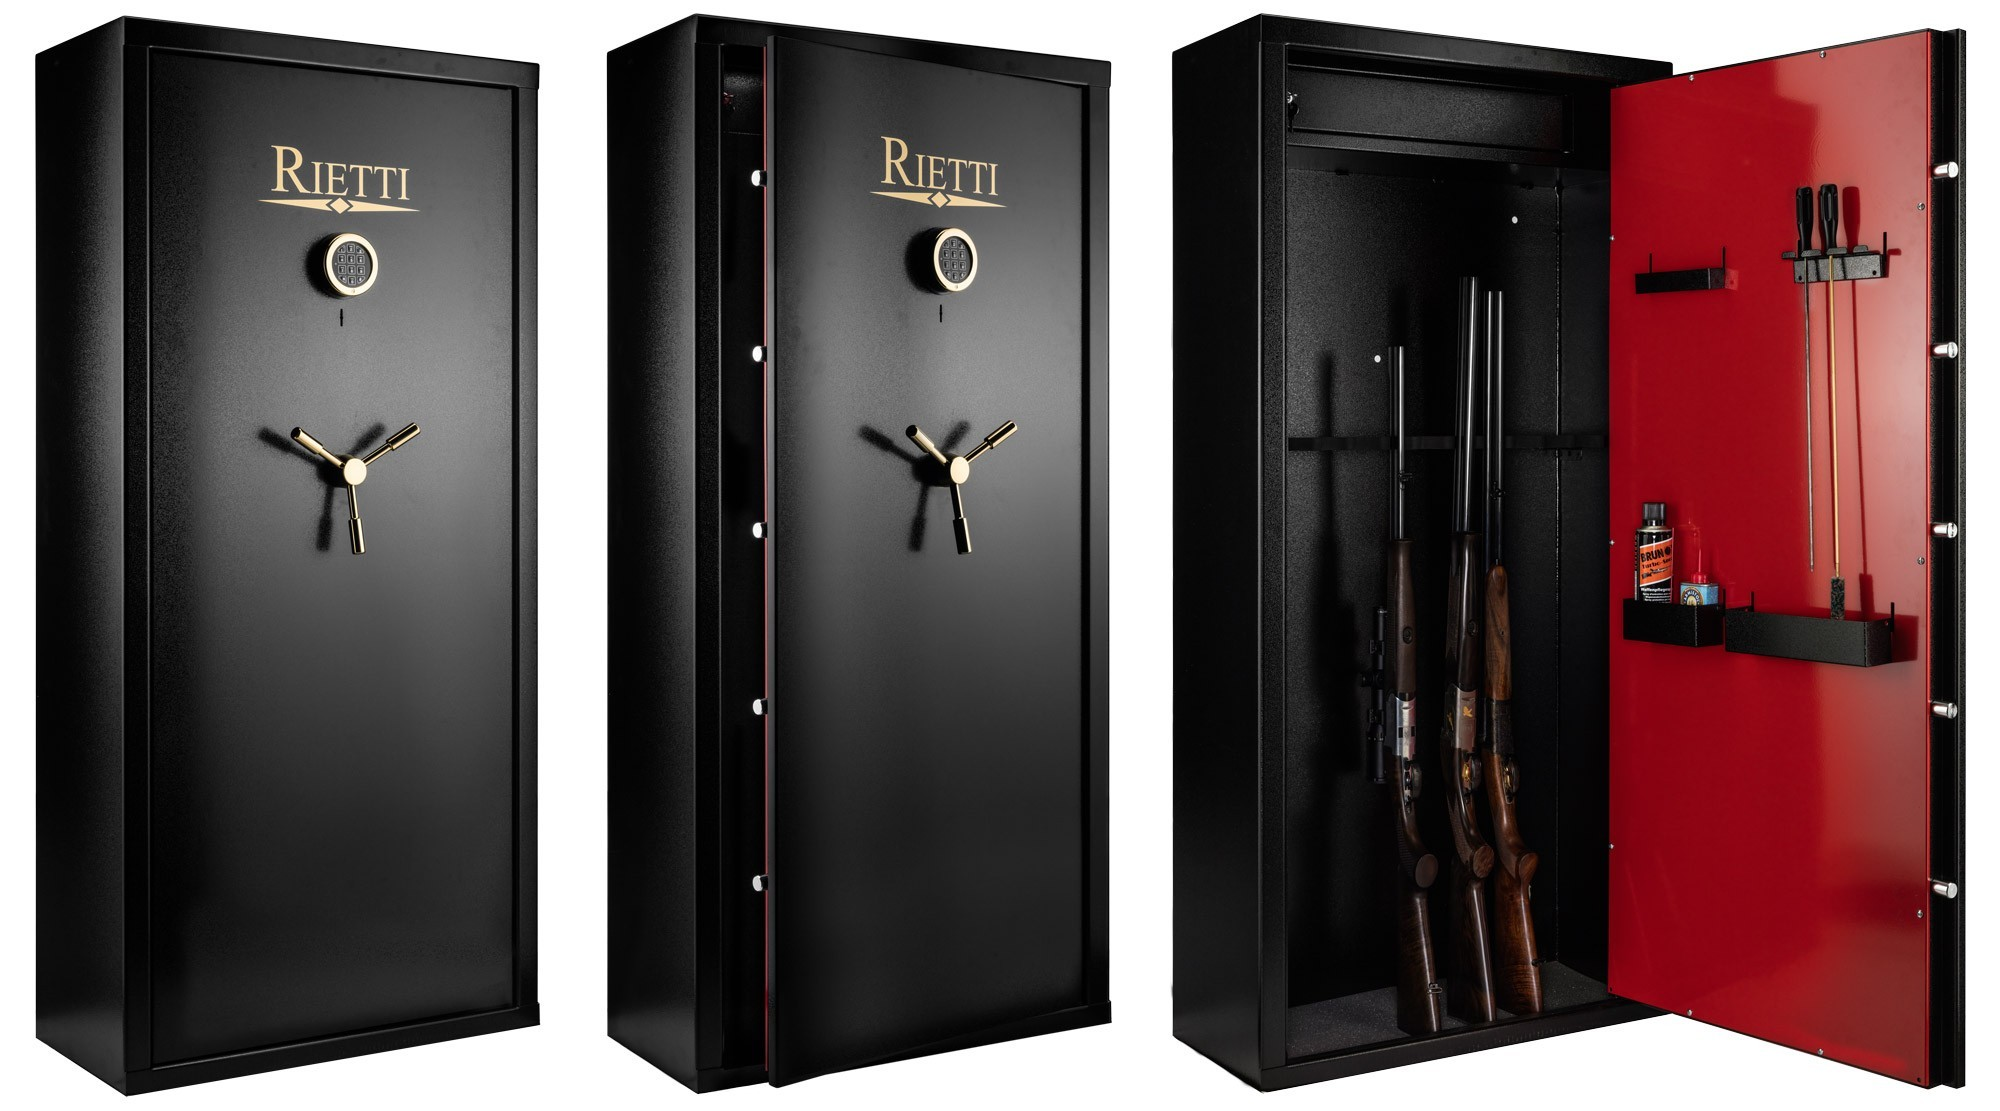 armoire forte rietti first digital 12 armes armoires fortes pour armes longues made in chasse. Black Bedroom Furniture Sets. Home Design Ideas